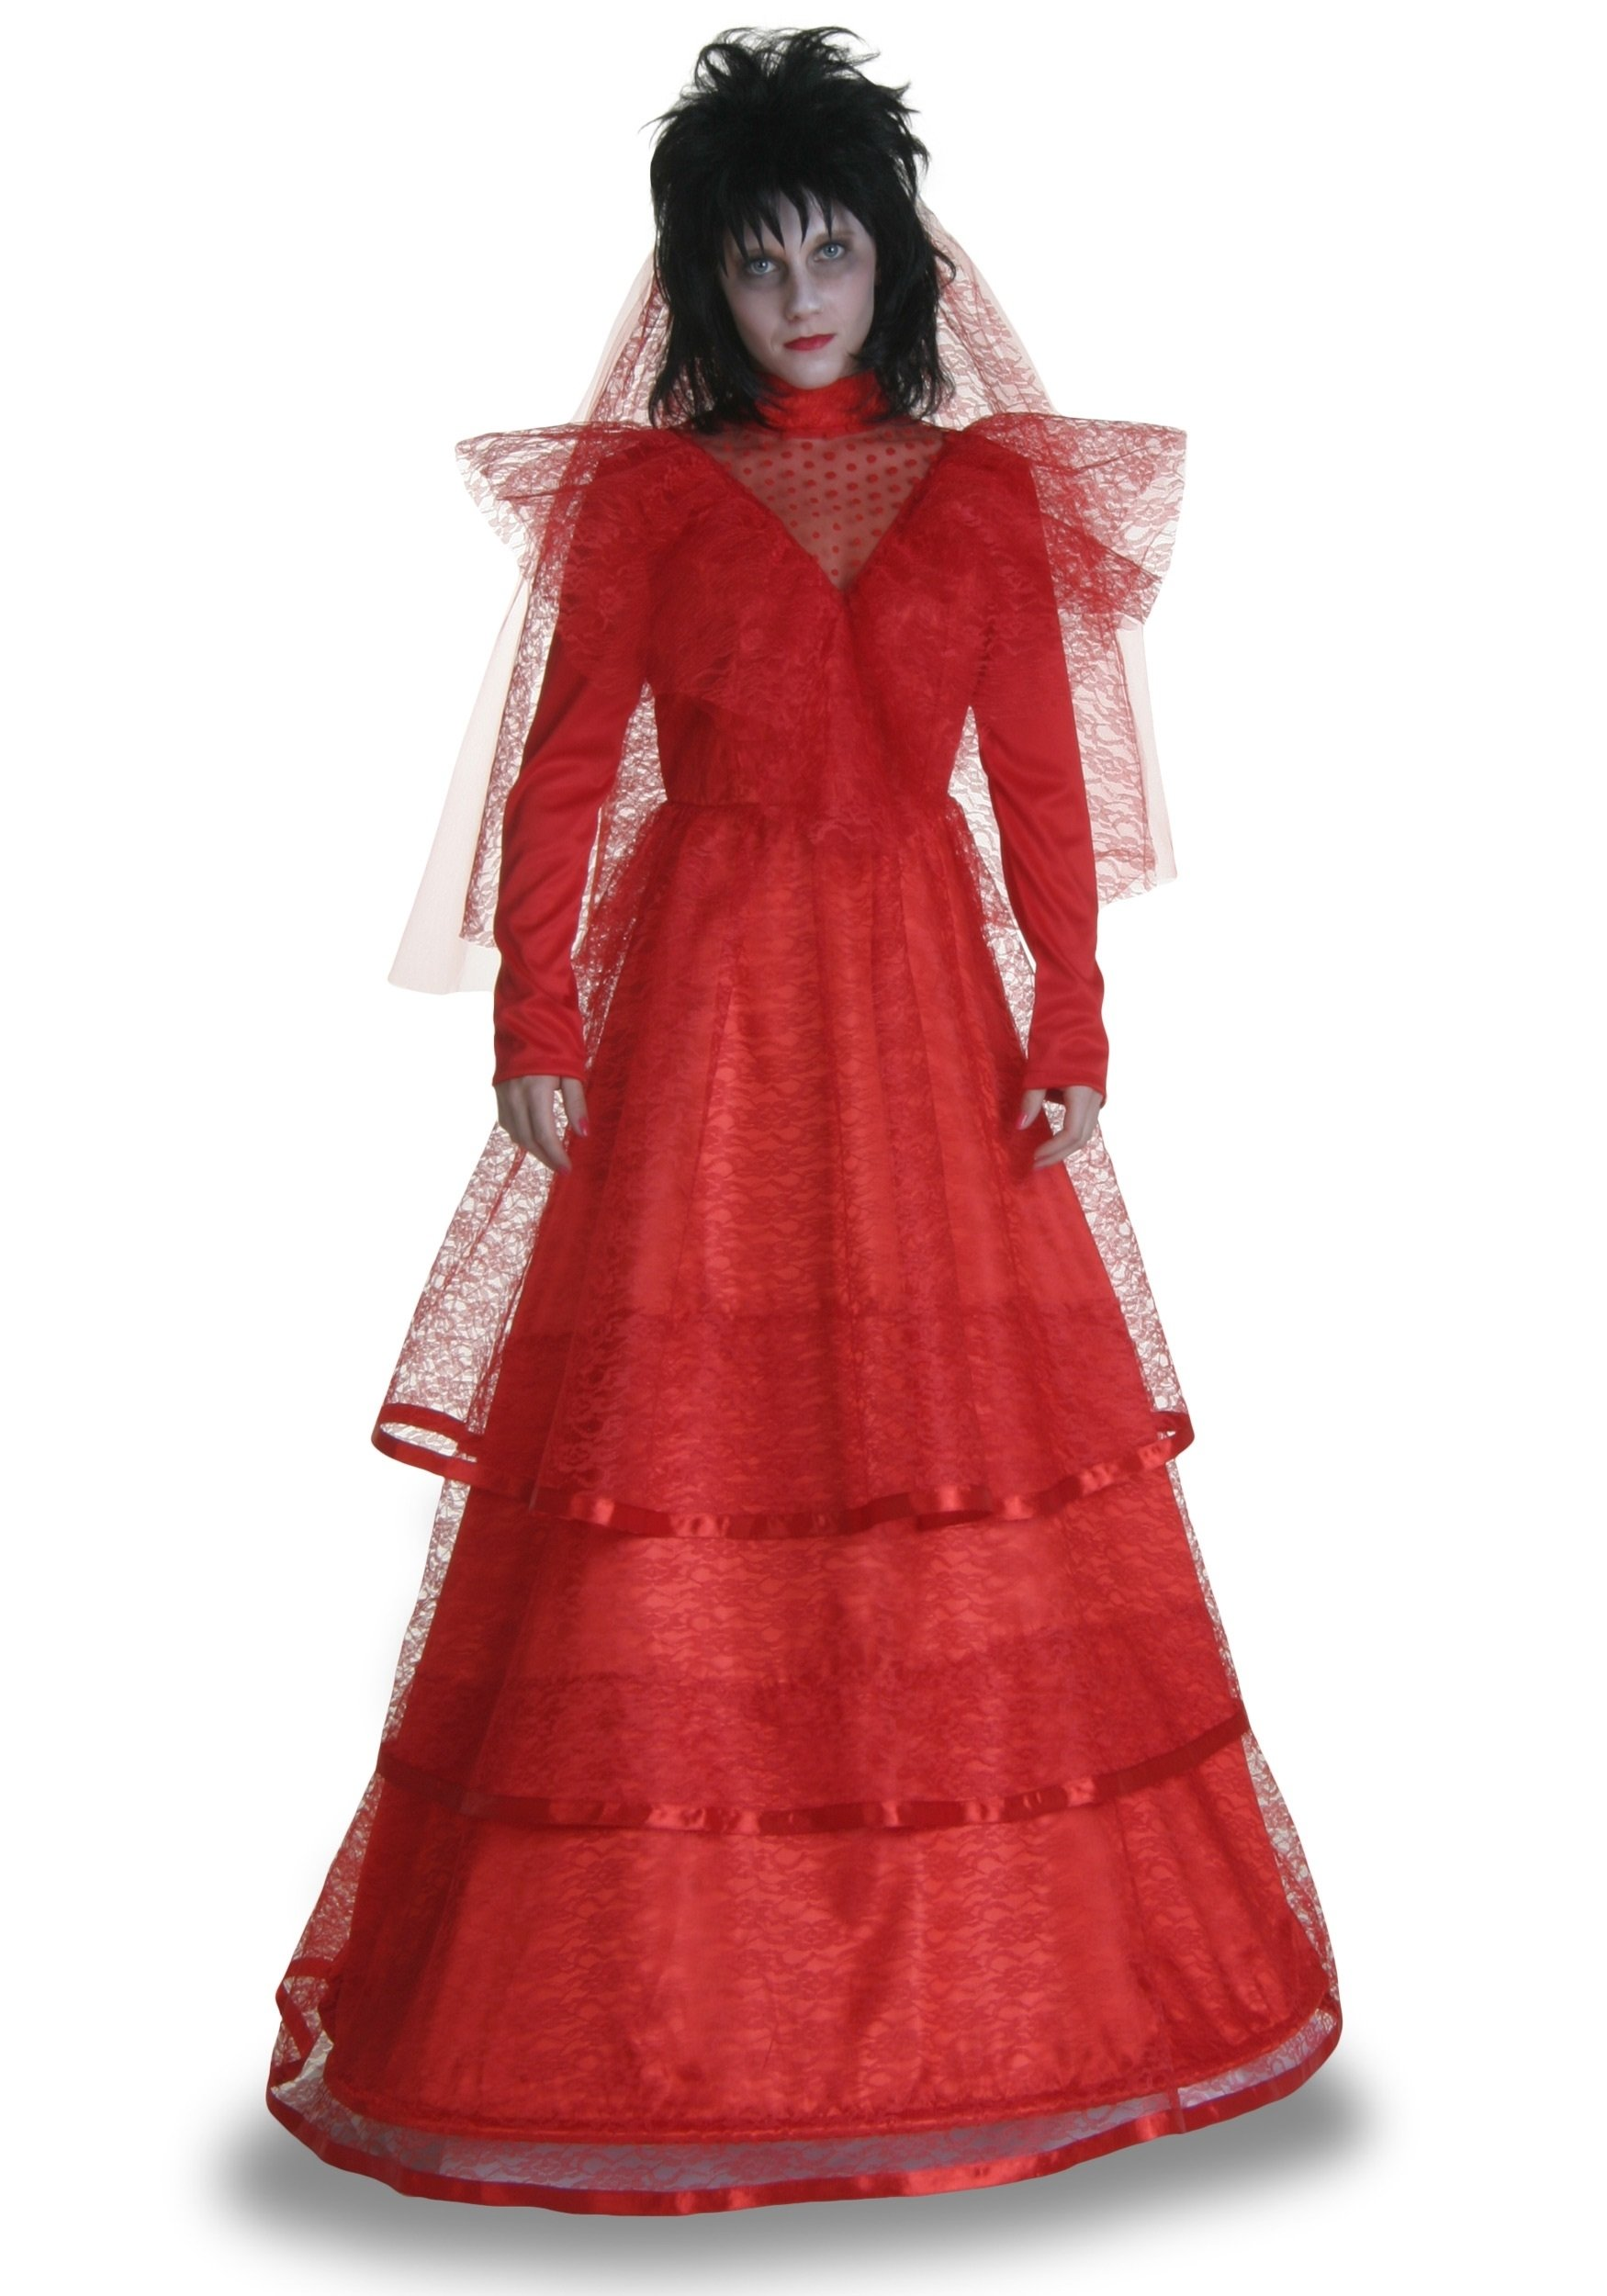 10 Gorgeous Red Dress Halloween Costume Ideas red gothic wedding dress costume